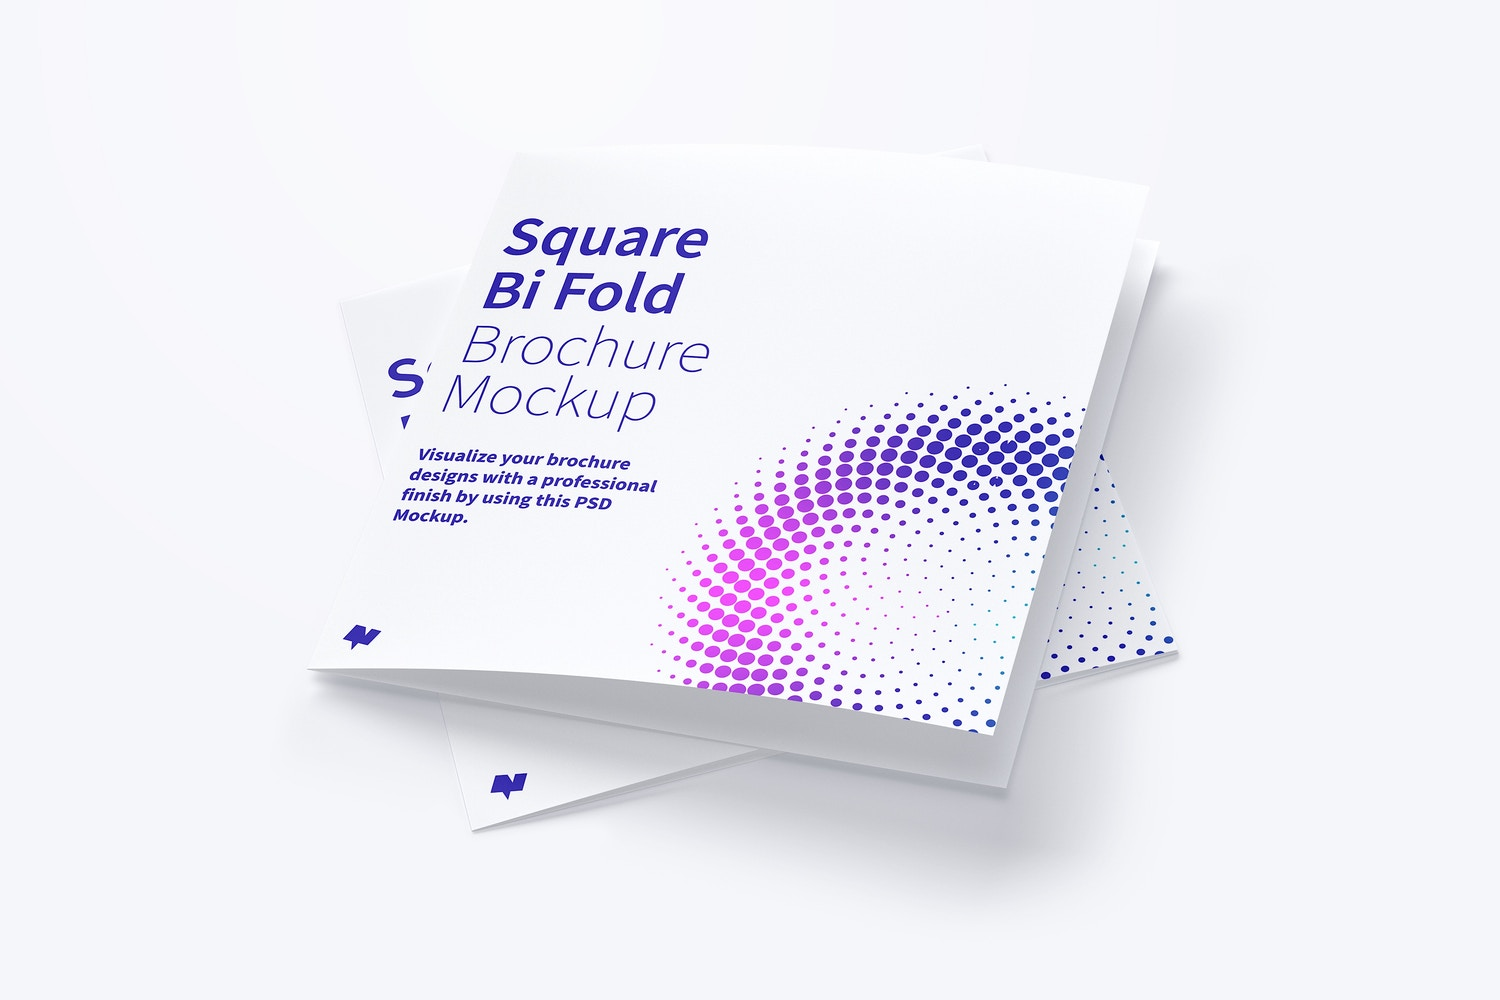 Square Bi Fold Brochure Mockup 06 by Original Mockups on Original Mockups